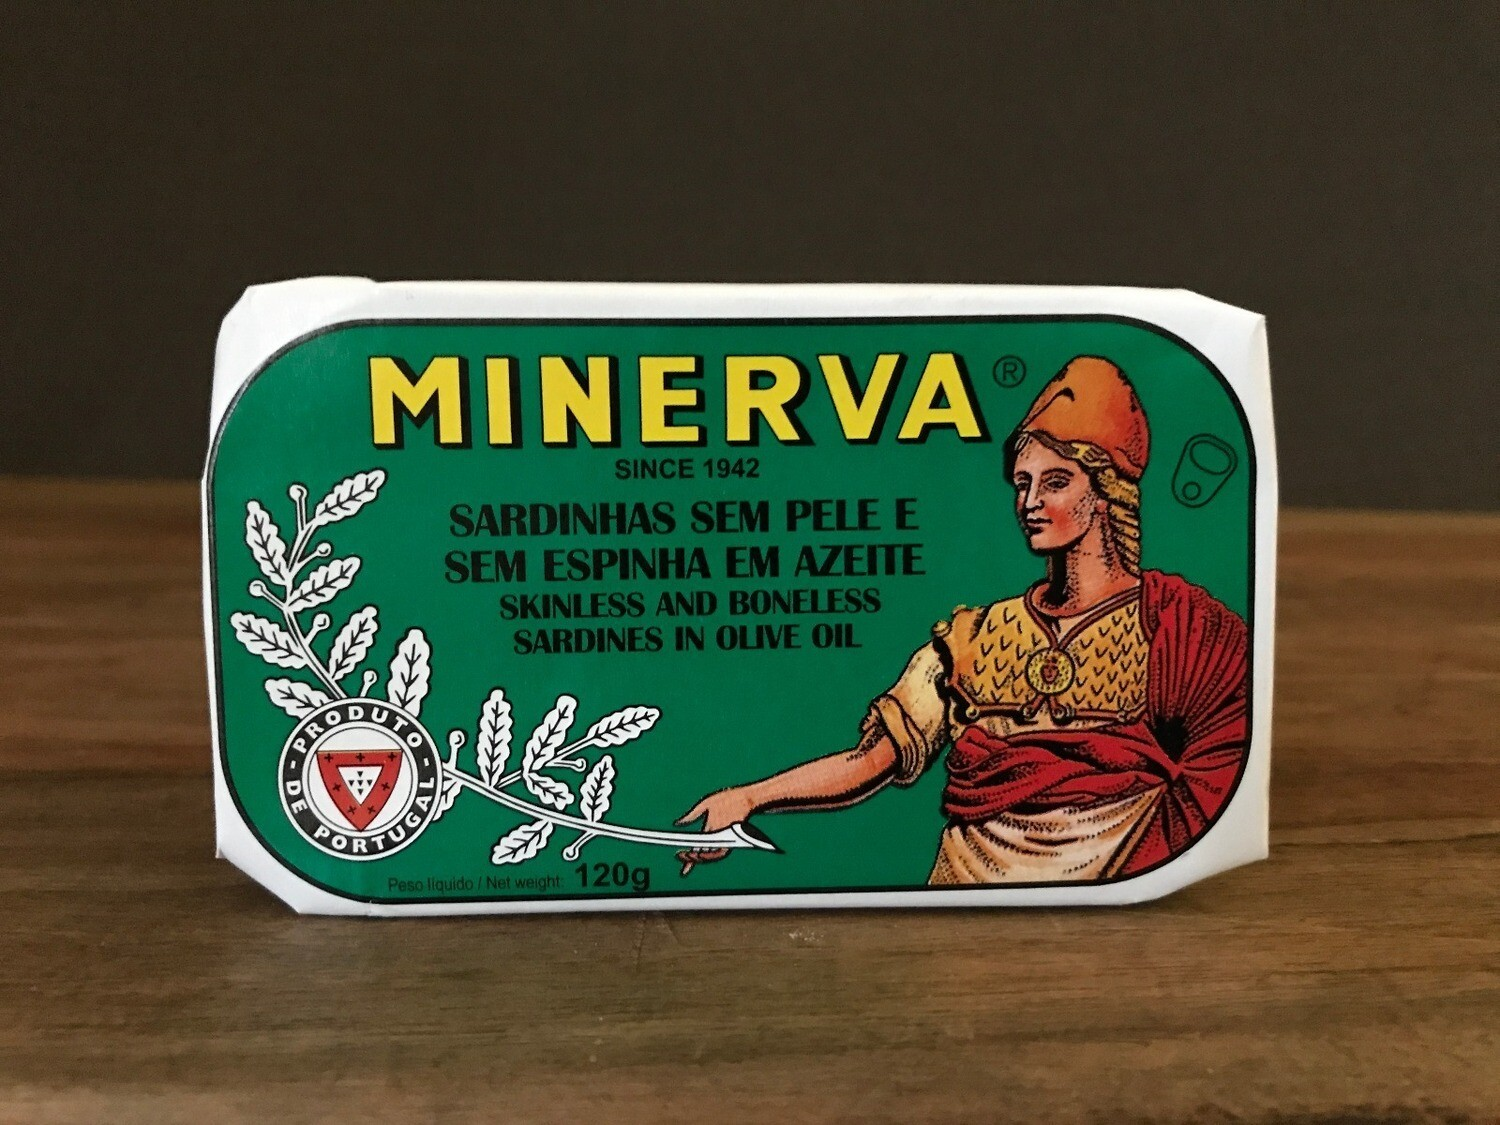 Minerva Sardine Skinless Boneless in Olive Oil 120g